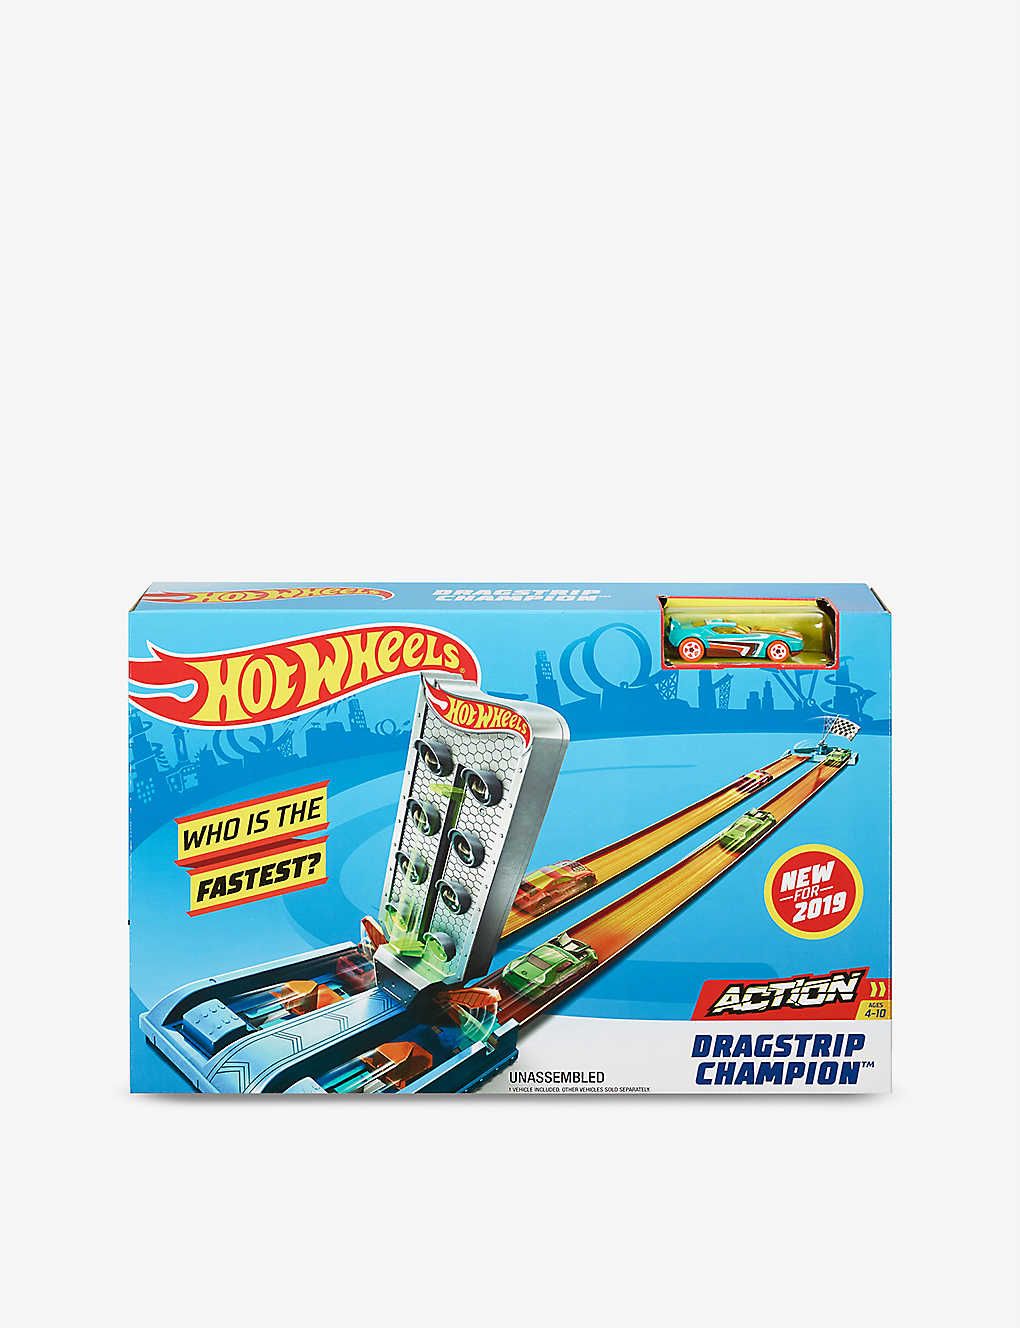 HOTWHEELS: Dragstick Champion play set